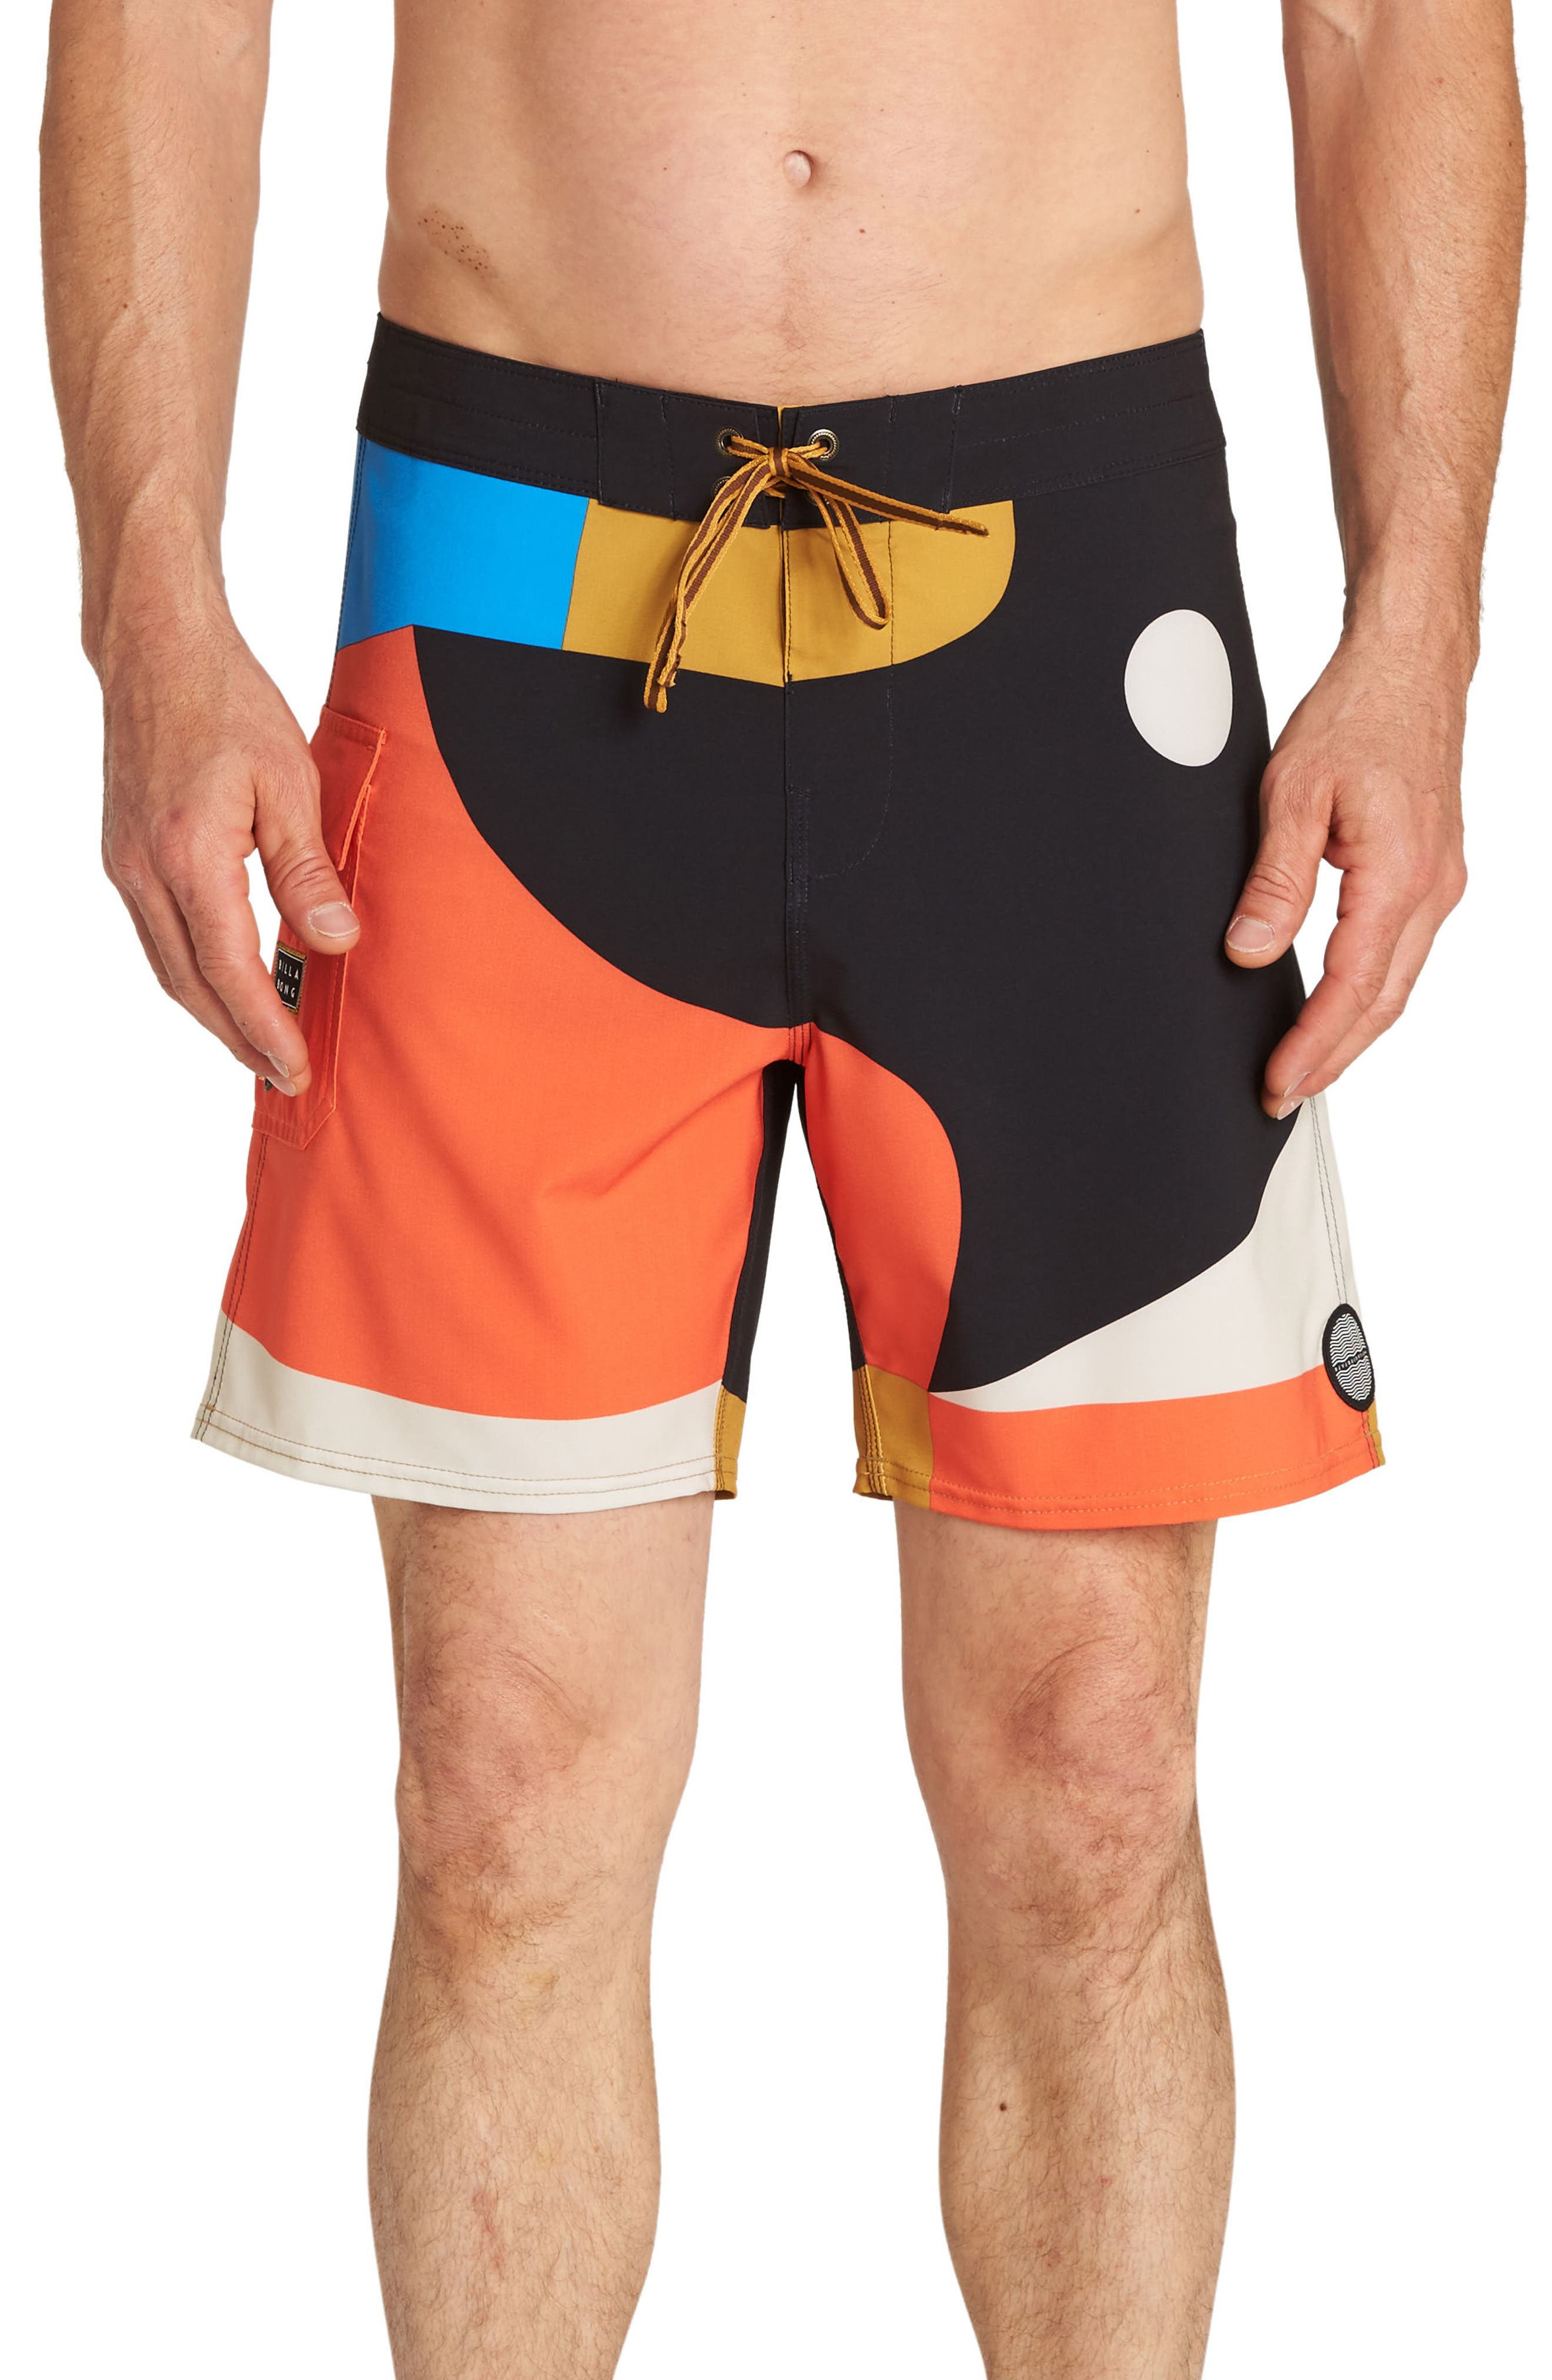 Vai Vai Swim Trunks,                             Main thumbnail 1, color,                             MULTI